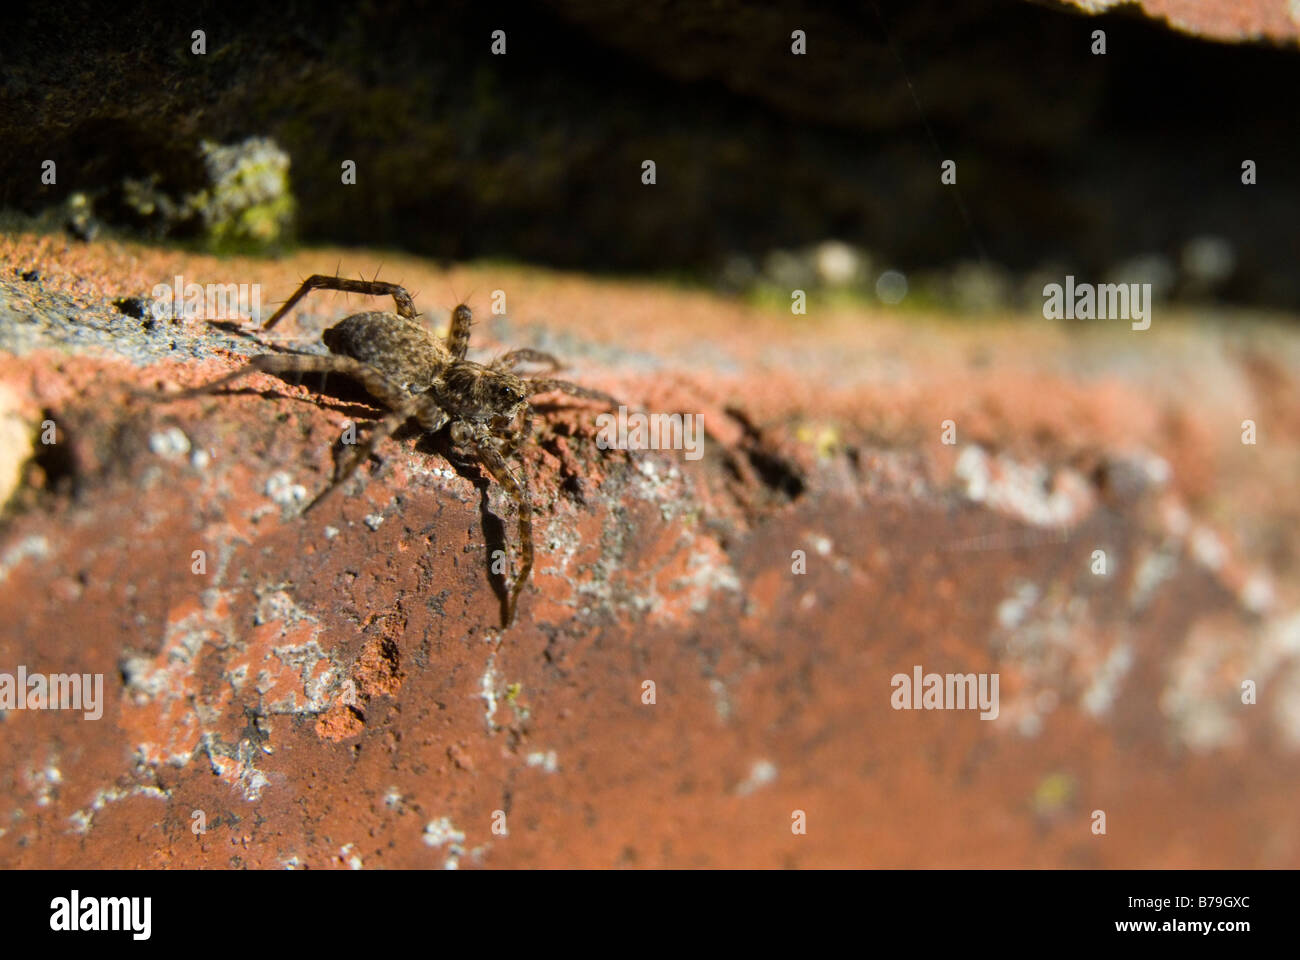 Very small hunting wolf Spider awaiting its prey on the edge of a brick in a old garden wall. - Stock Image